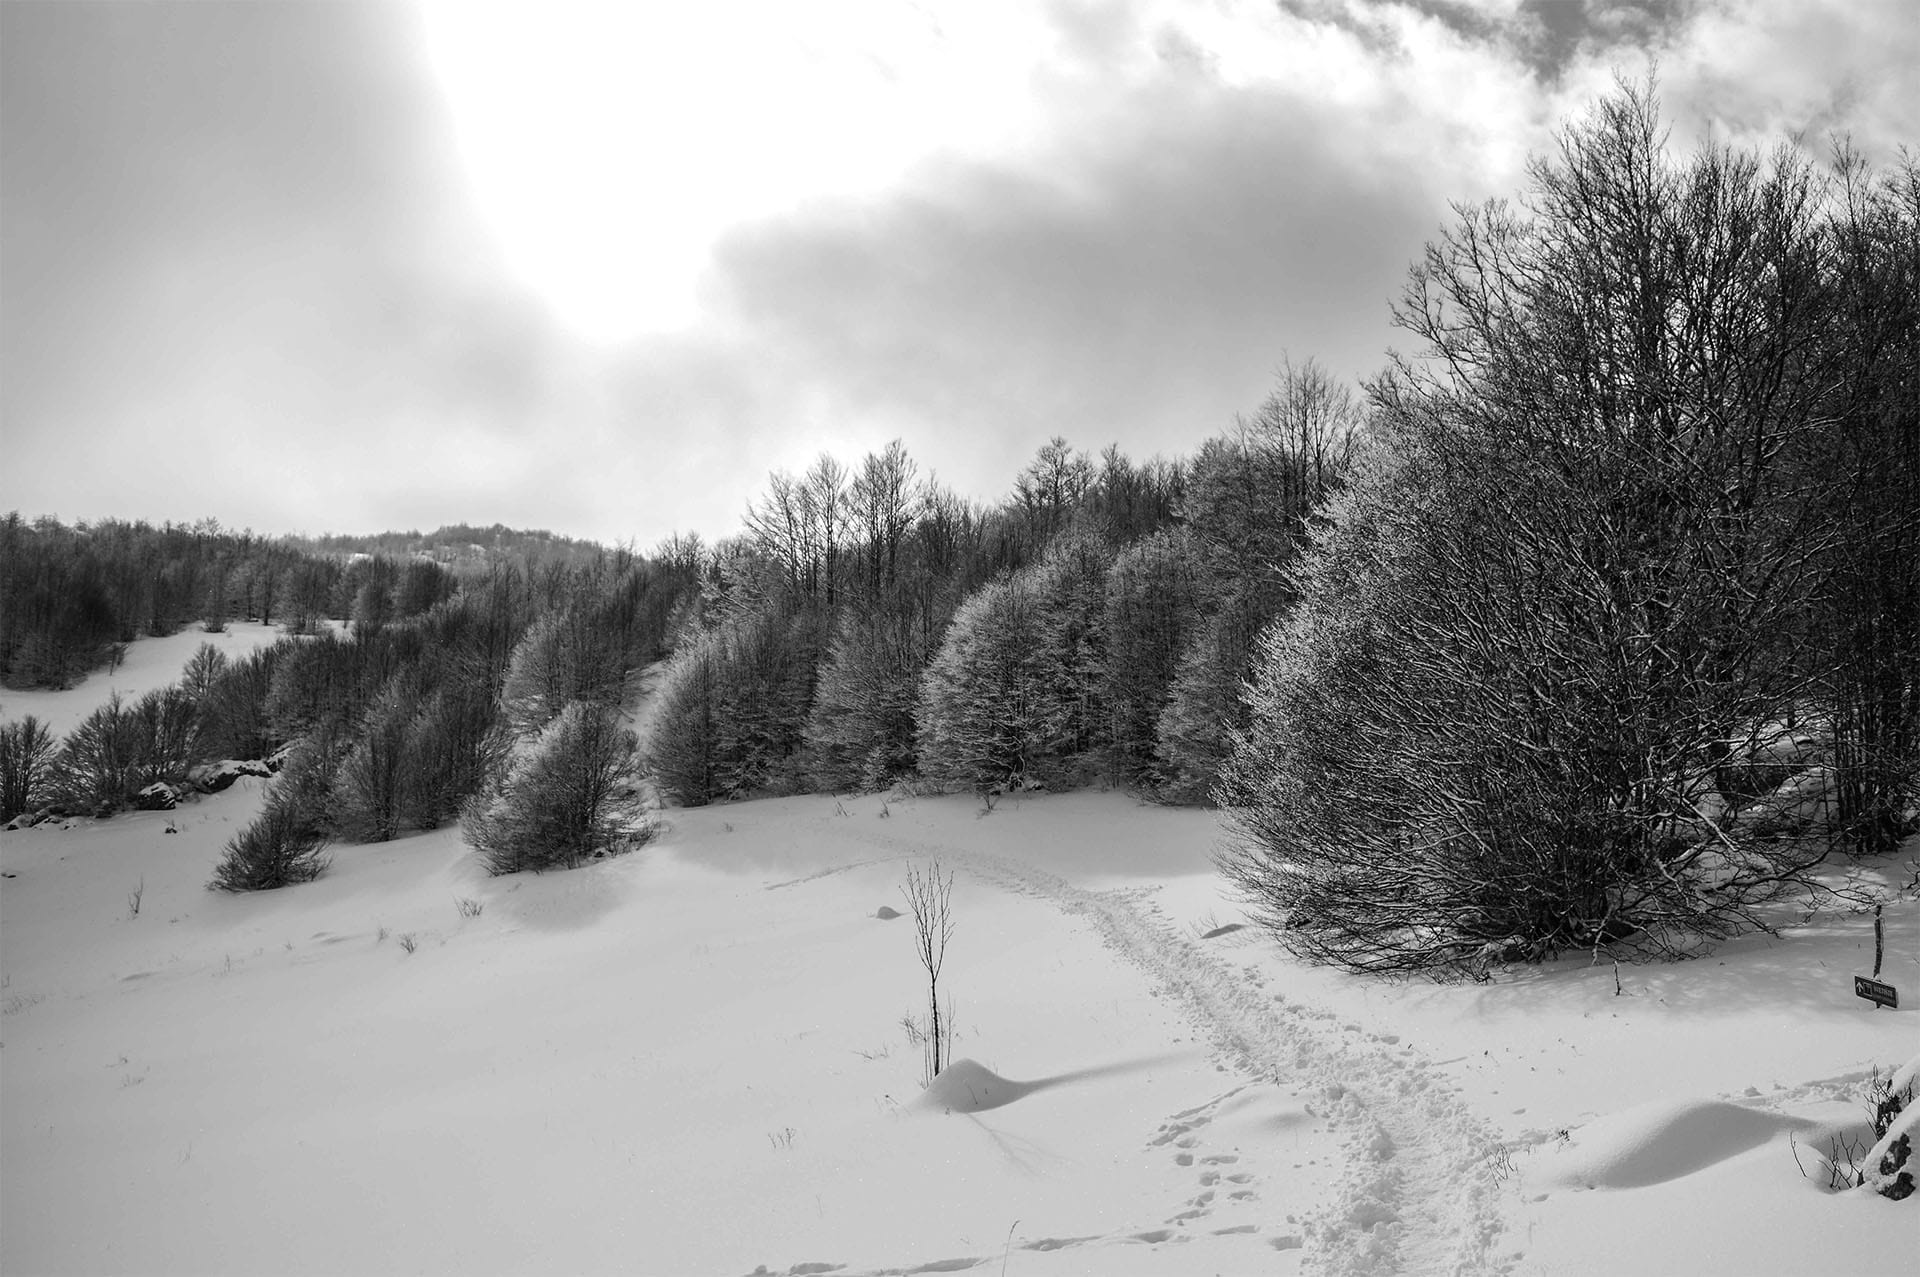 Snowy landscape on Kamesnica mountain